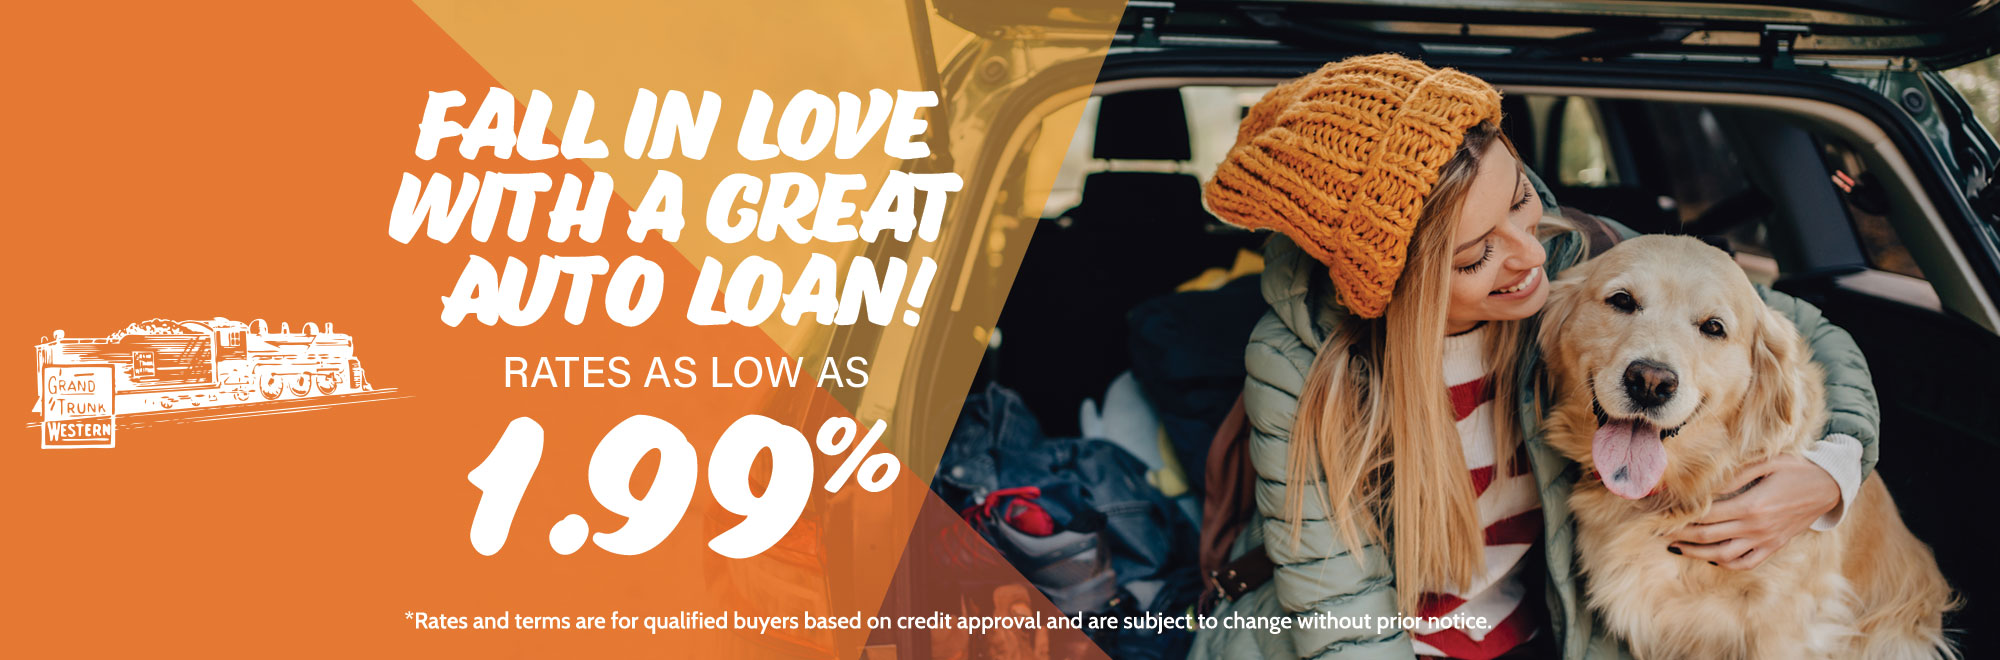 Fall in Love With a great auto Loan! Rates as low as 1.99%